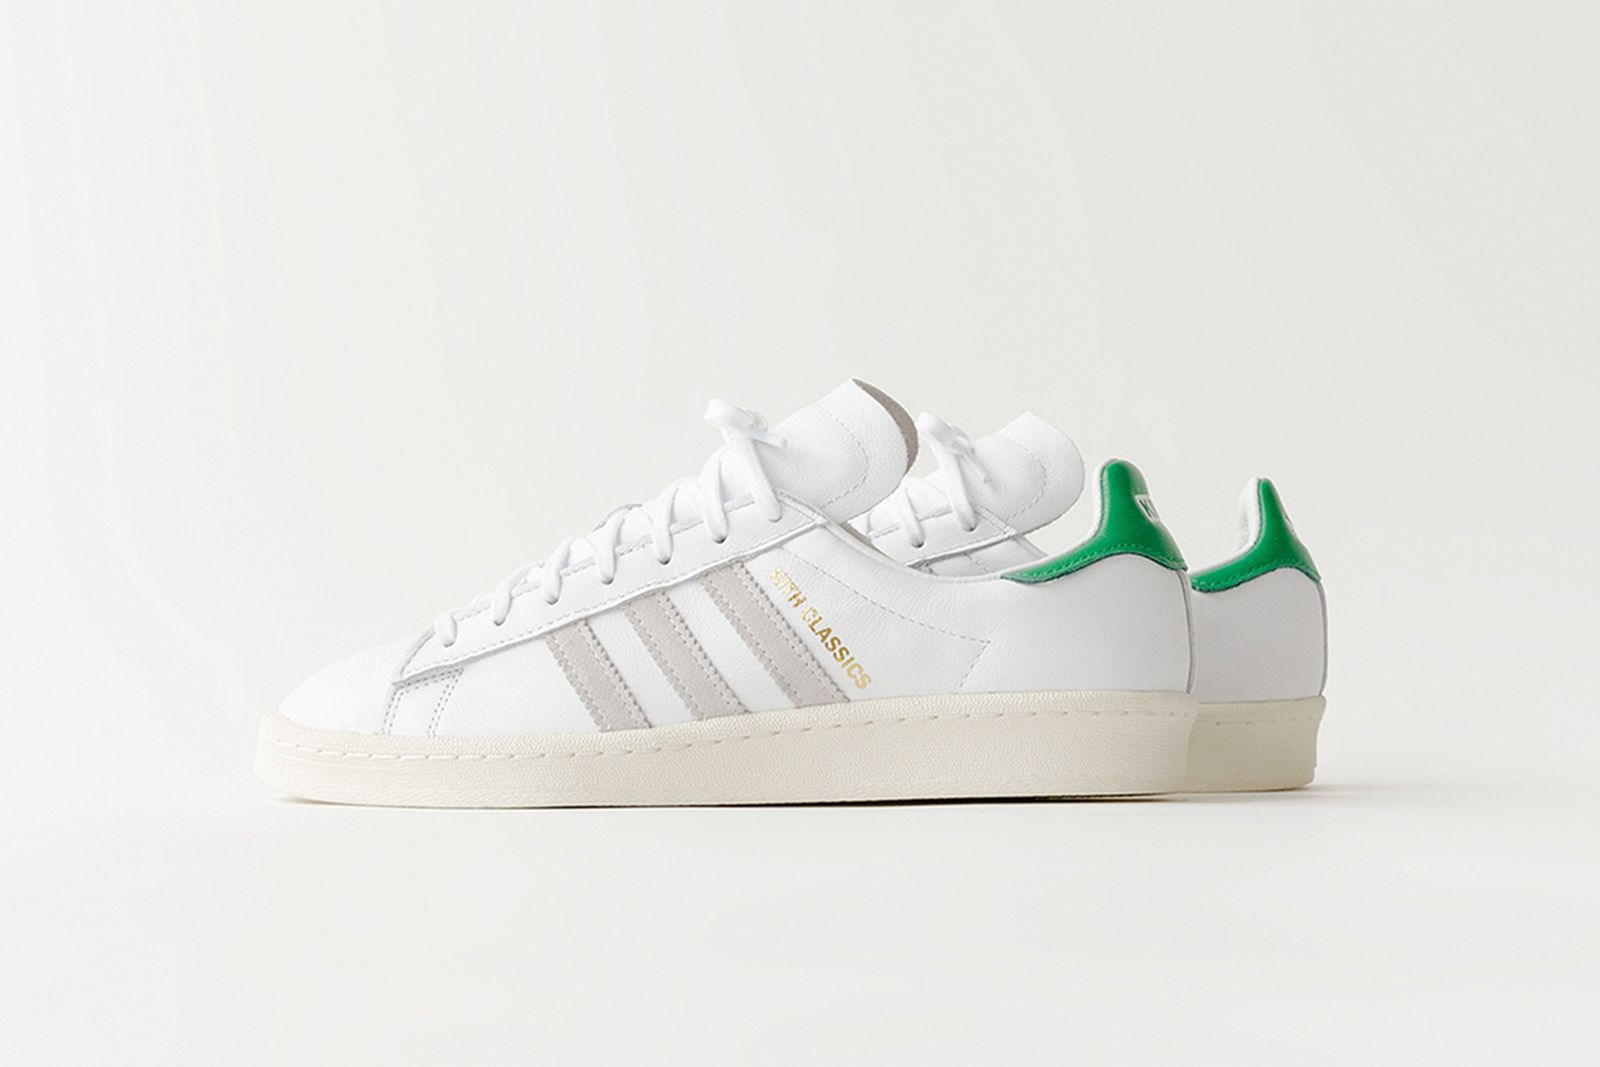 kith-adidas-summer-2021-release-info-20